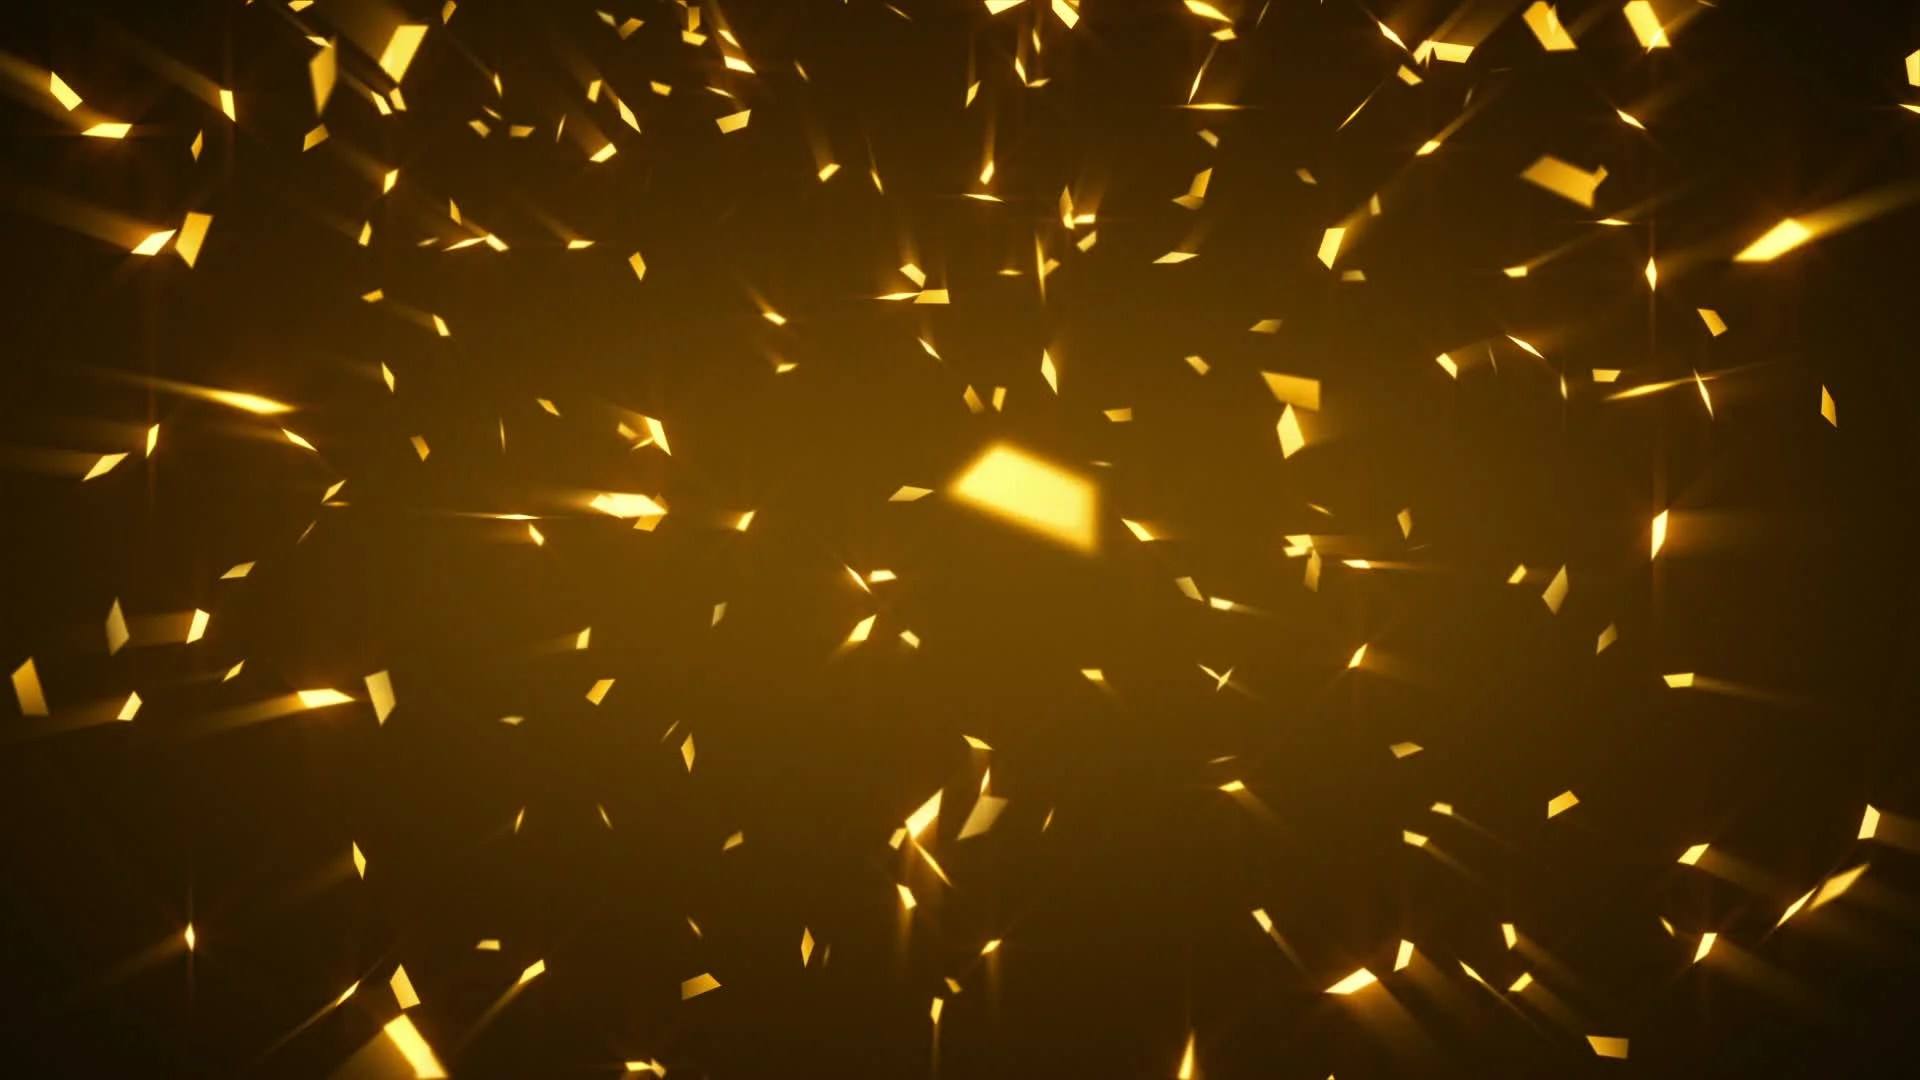 Animated 3d Wallpaper Gifs Looping Stock Video Gold Shiny Confetti Background Loop 12377504